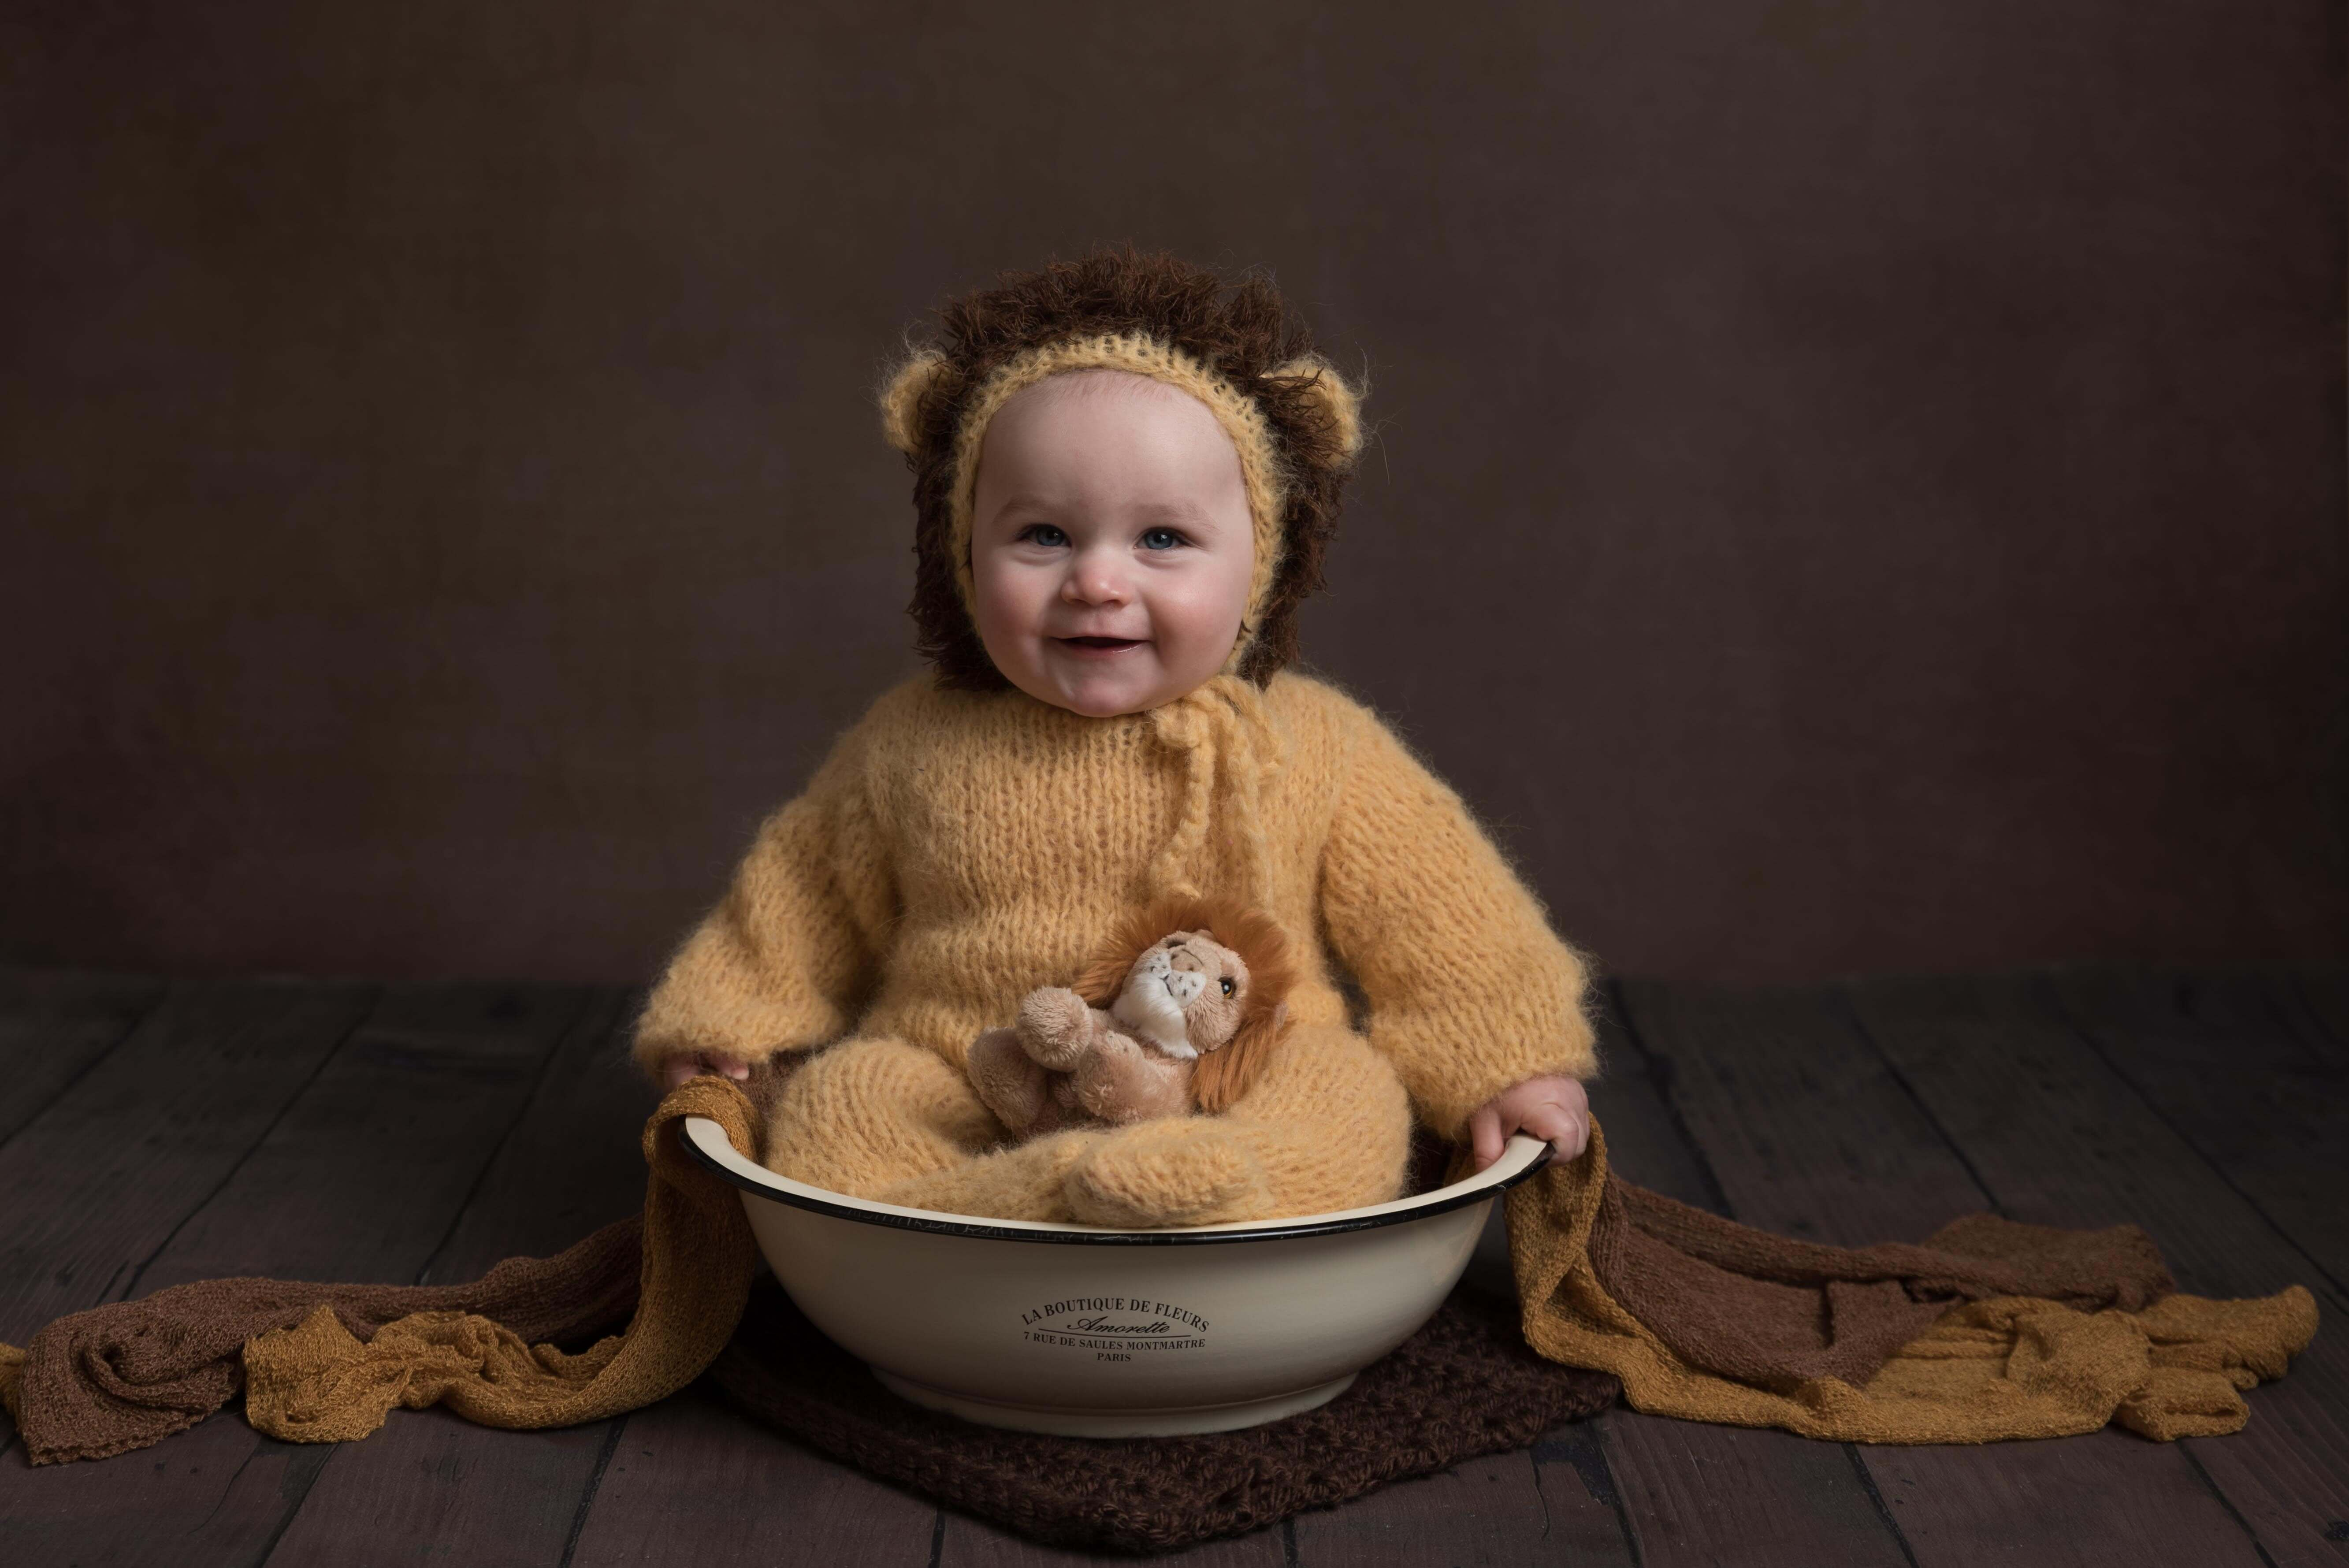 Slice of Life Little Sitters Session Gallery - Baby wearing a lion onesie holding a lion toy